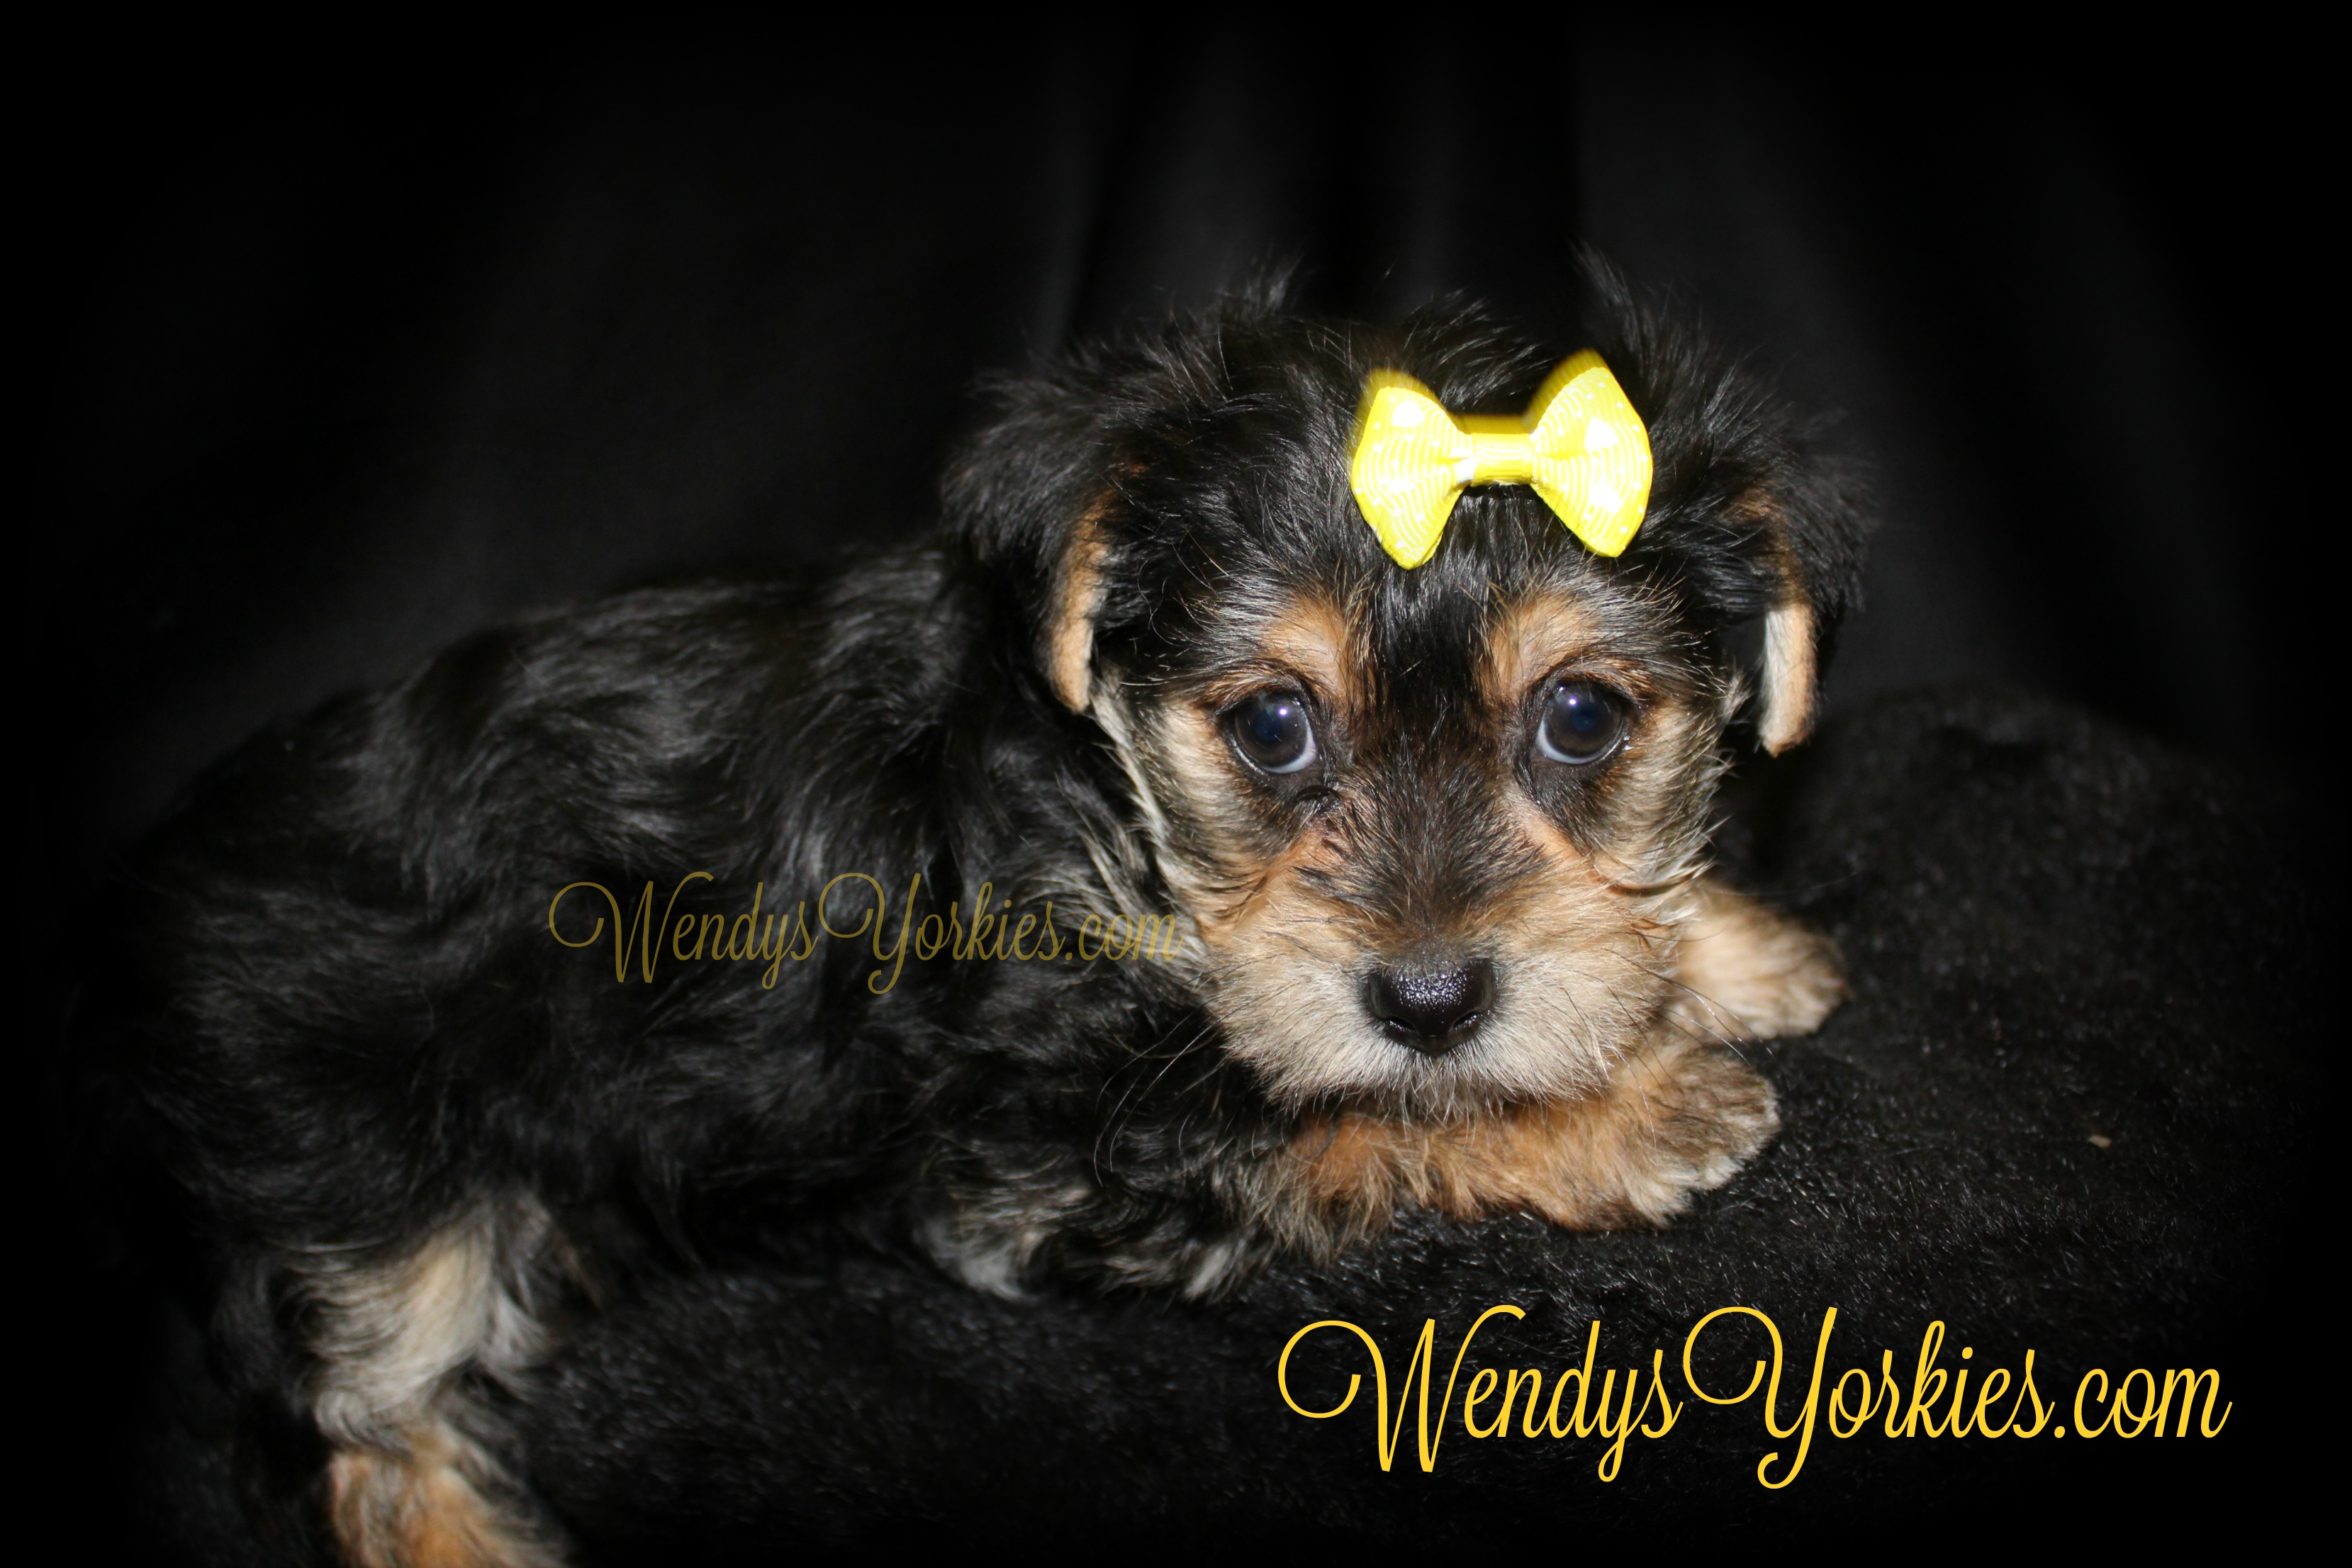 Yorkie puppy for sale, WendysYorkies.com, TH F2